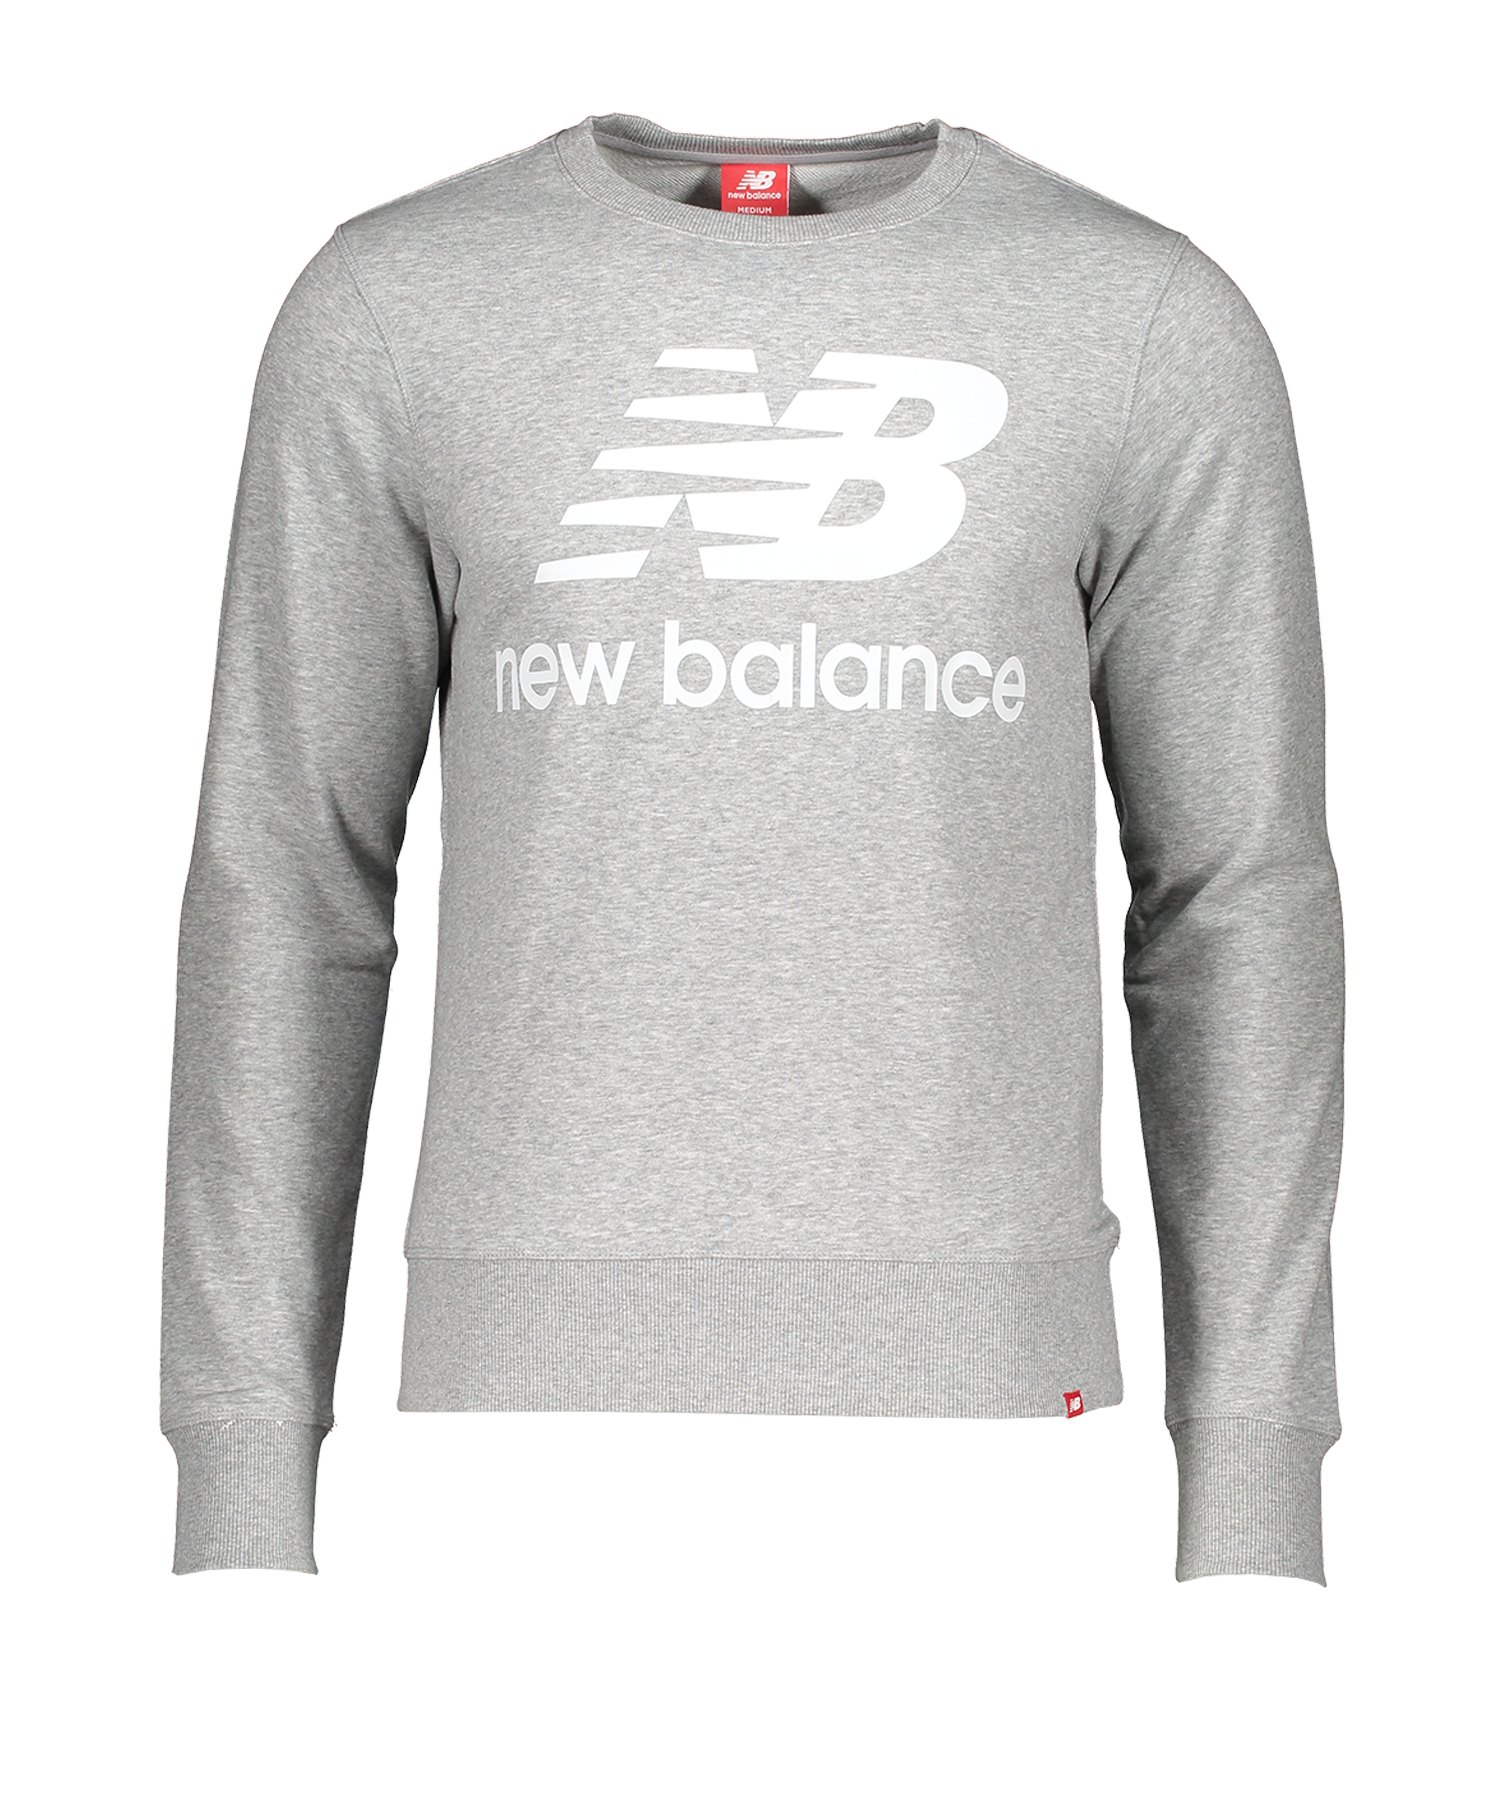 New Balance Essentials Stacked Logo SweatshirtF121 - grau